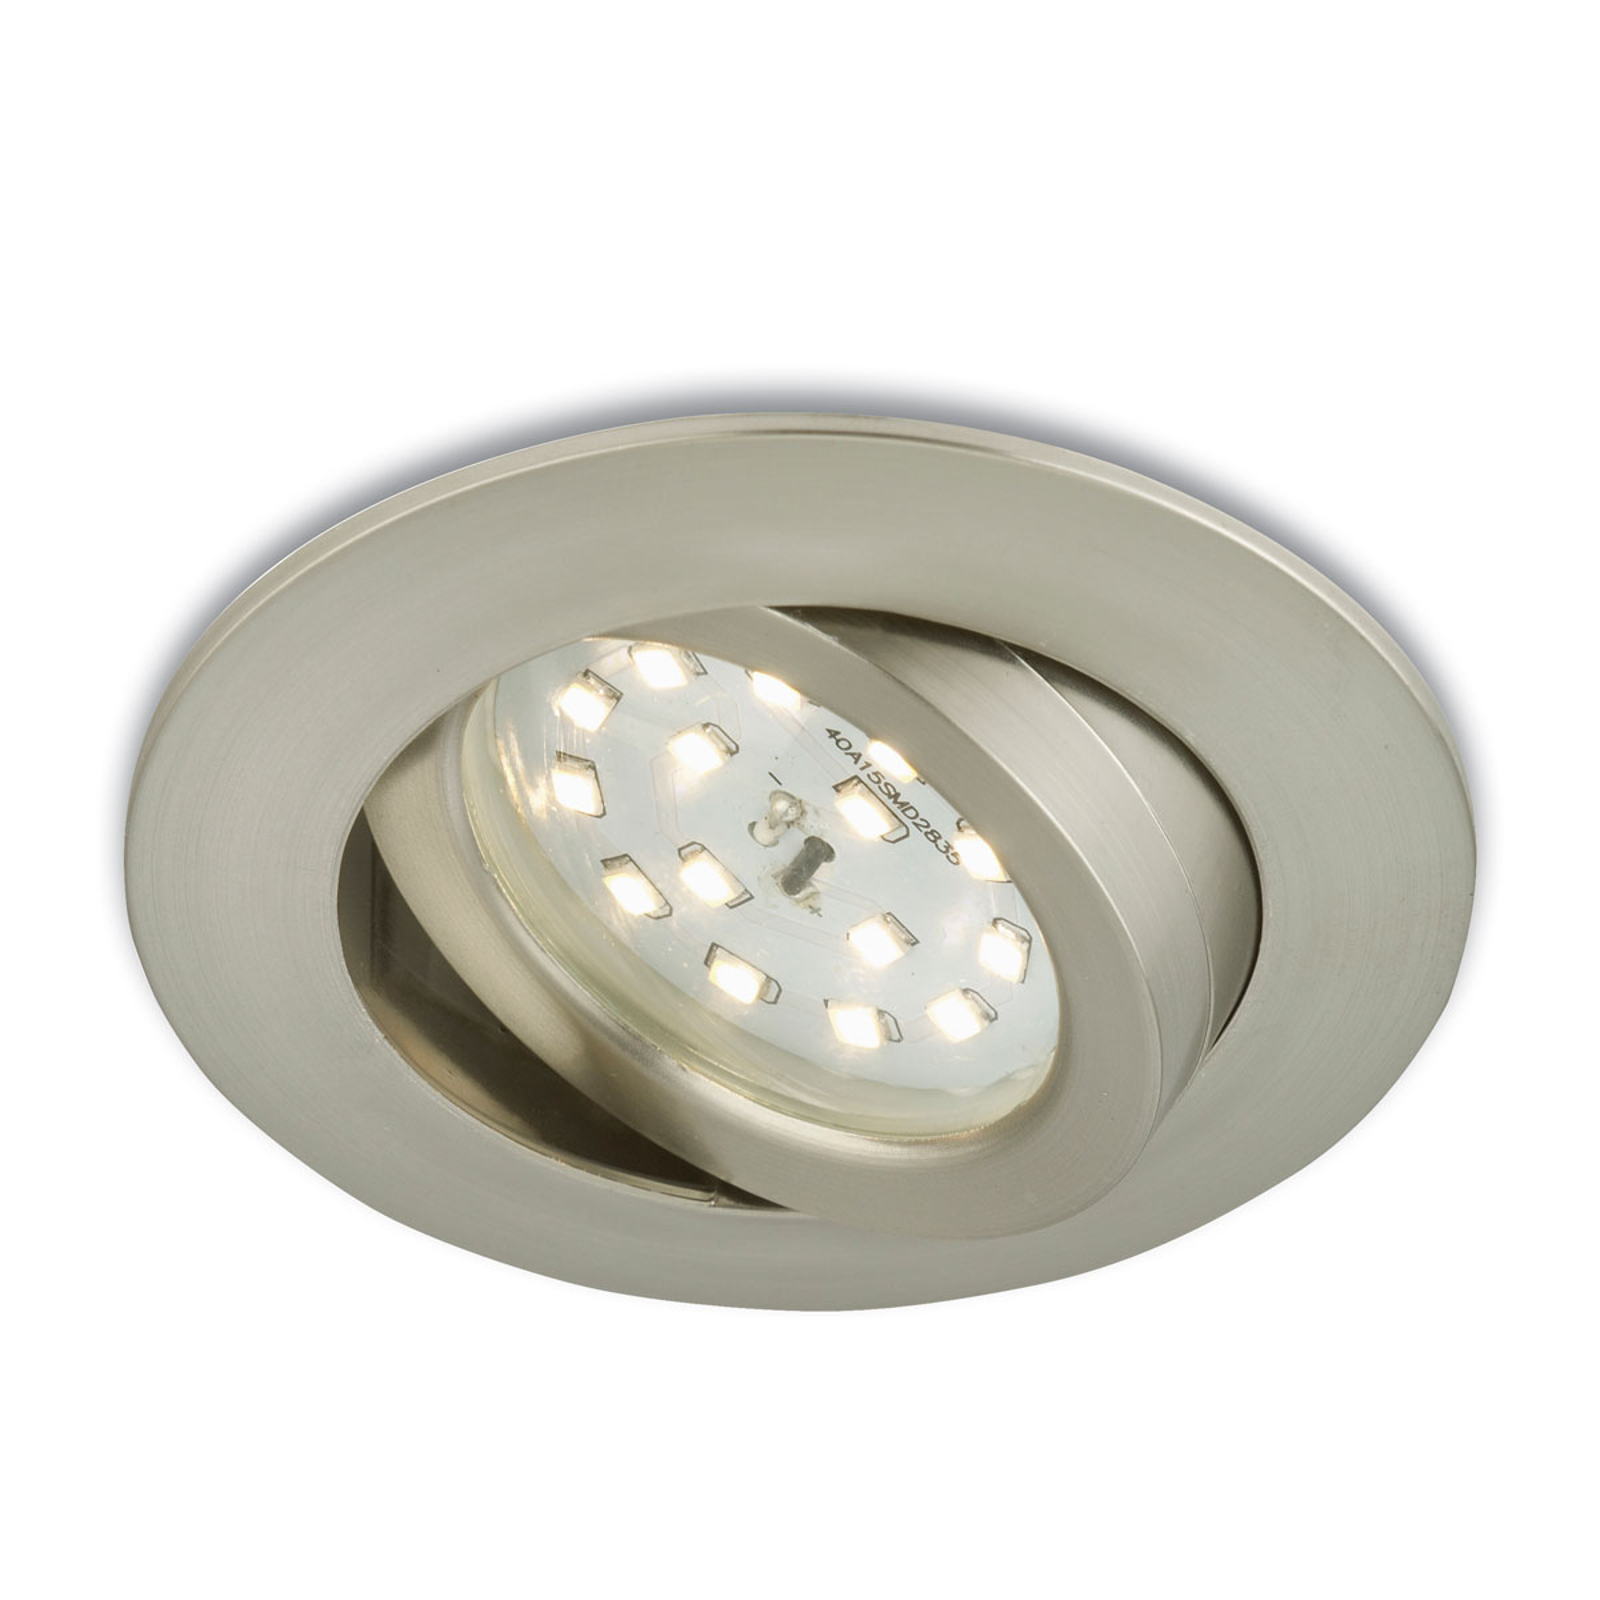 Flexible LED recessed light Erik, matt nickel_1510283_1